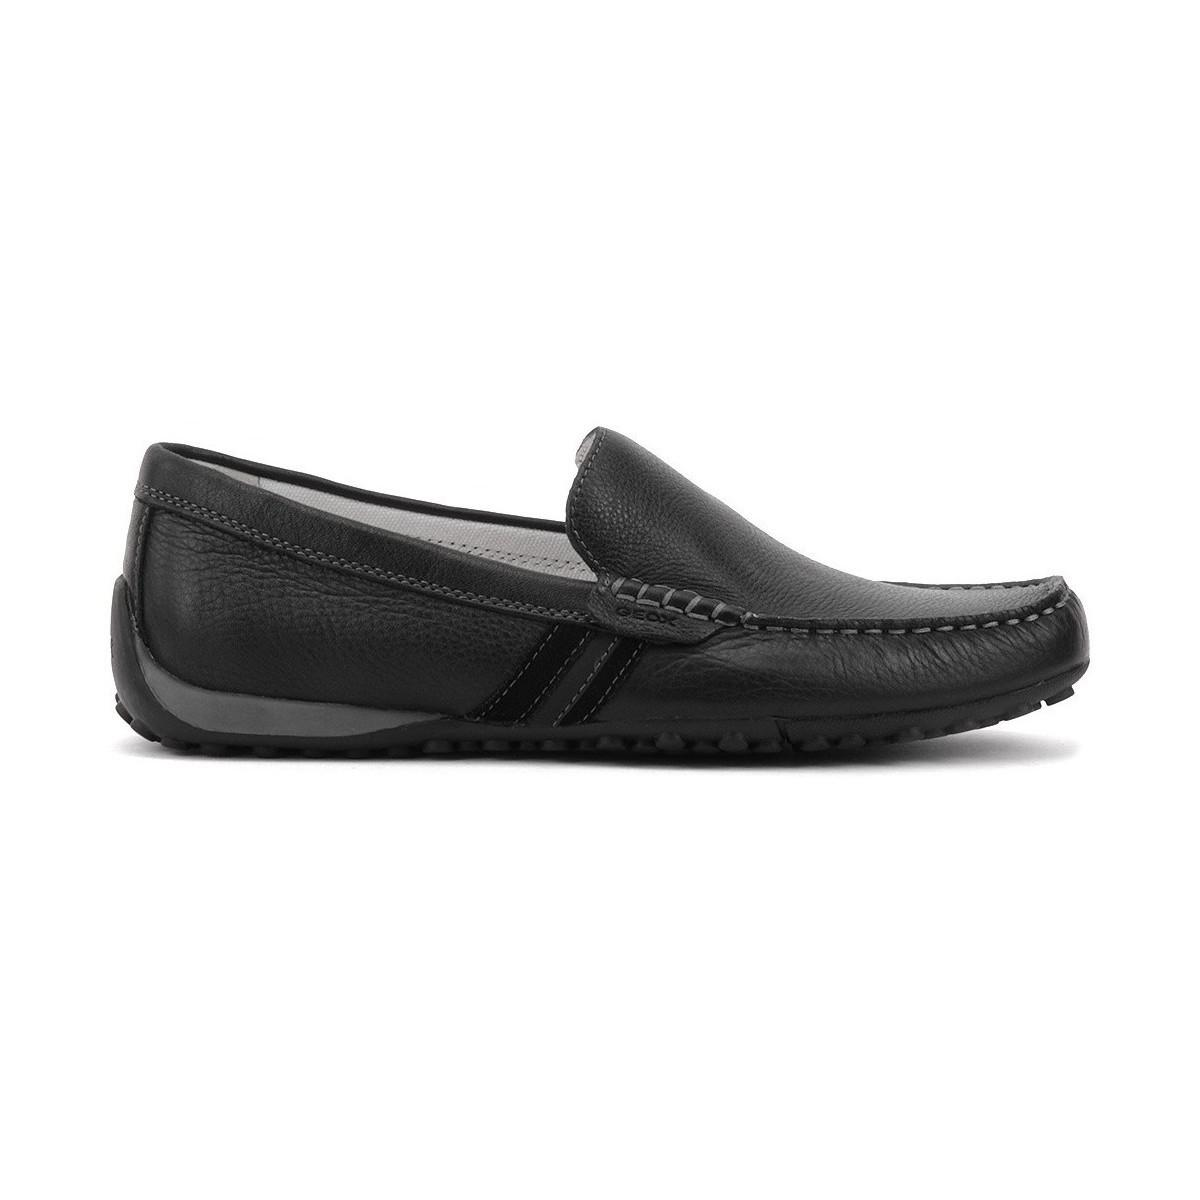 505f0099c52 Geox Snake Men s Loafers   Casual Shoes In Black in Black for Men - Lyst